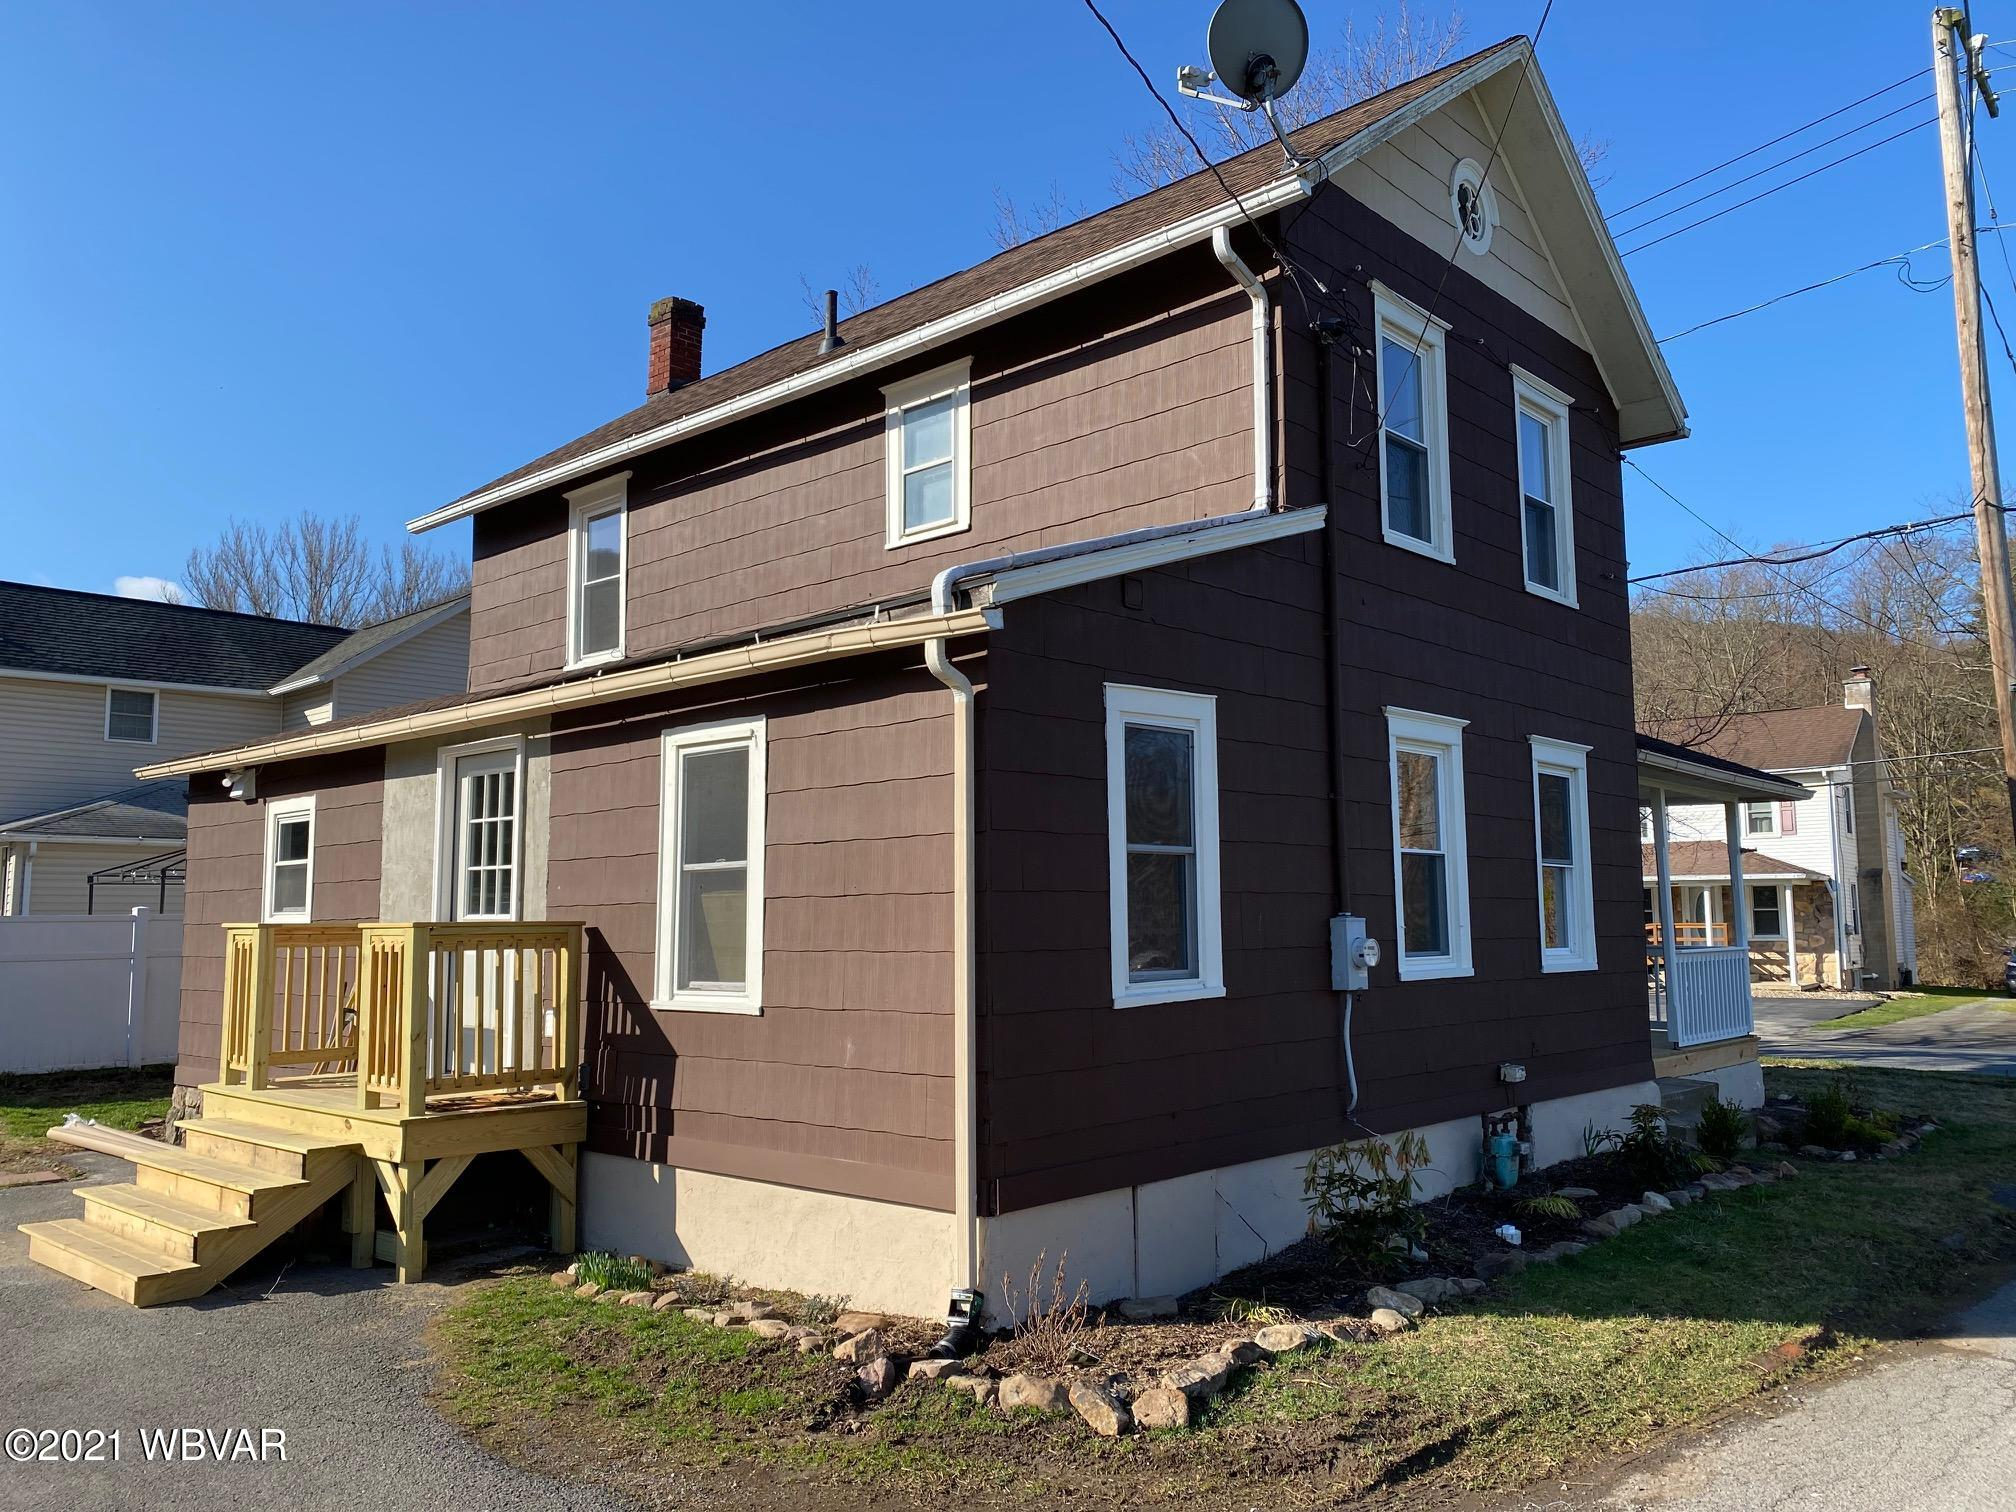 243 VALLEY STREET, Williamsport, PA 17702, 4 Bedrooms Bedrooms, ,1.5 BathroomsBathrooms,Residential,For sale,VALLEY,WB-92160